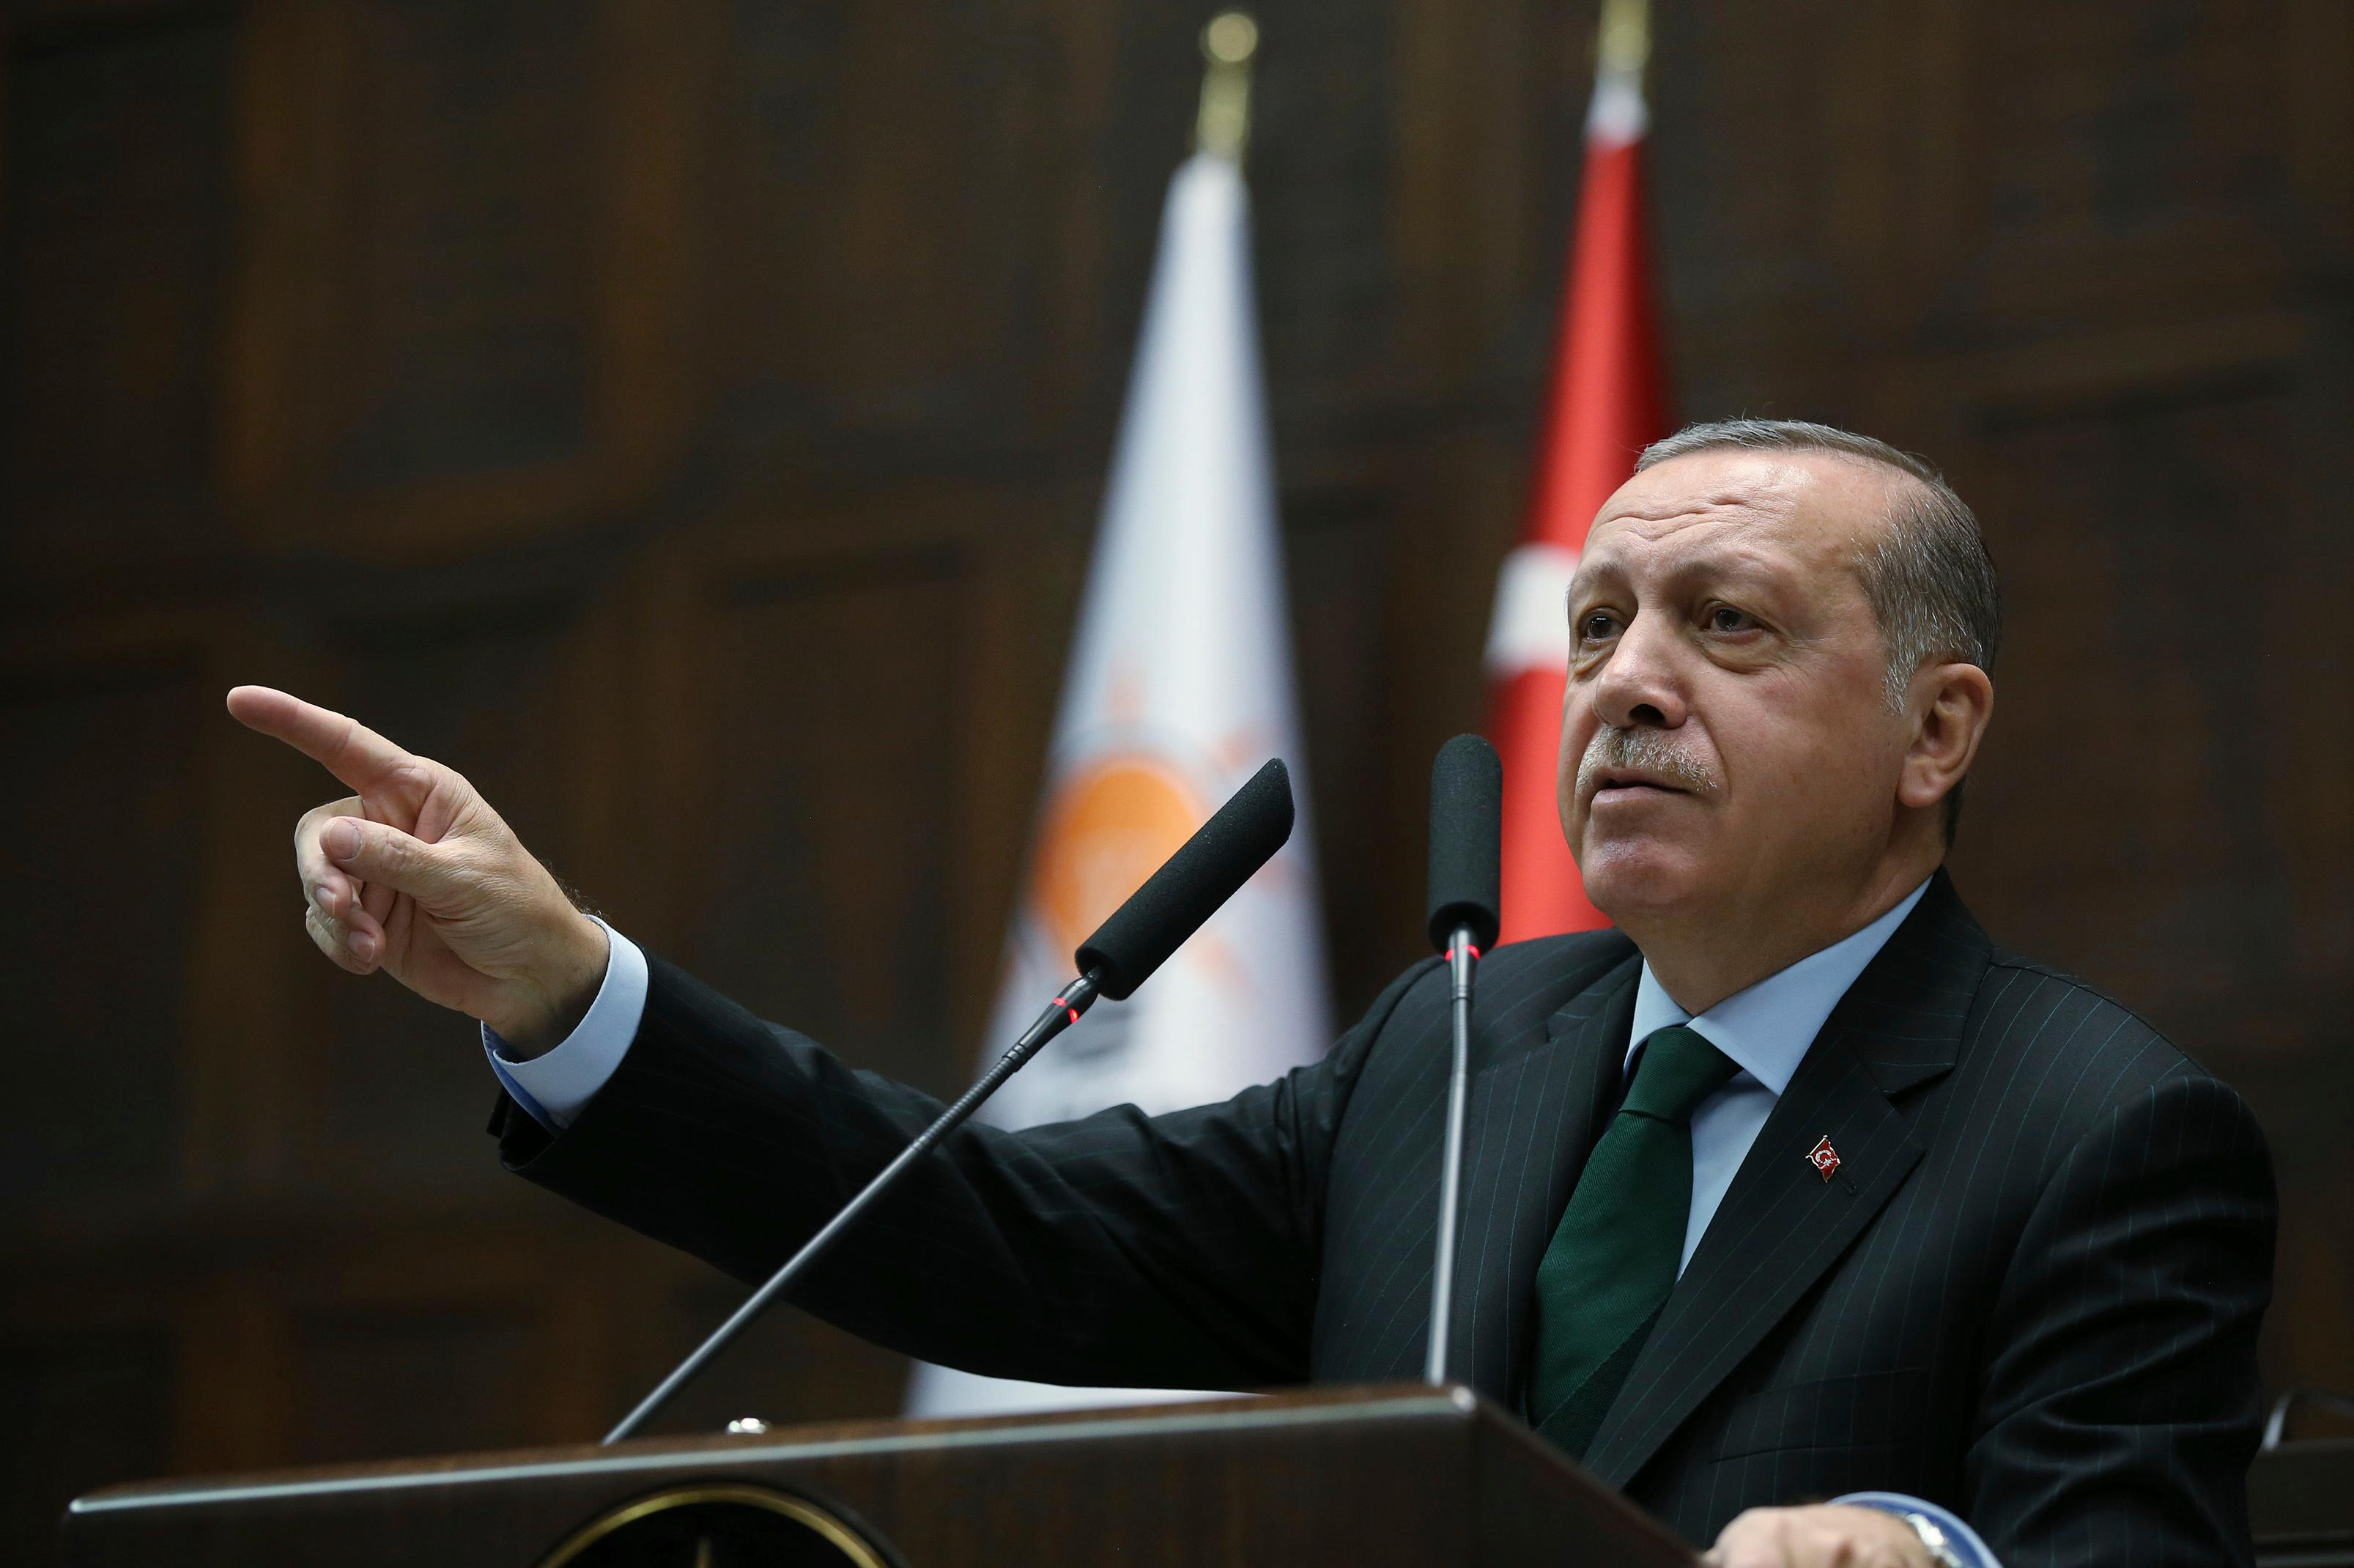 Turkey's President Recep Tayyip Erdogan gestures as he delivers a speech during a meeting of his ruling Justice and Development Party (AKP), in Ankara, Turkey, Tuesday, Dec. 5, 2017. Erdogan says U.S. recognition of Jerusalem as Israel's capital is a 'red line' for Muslims and also said such a step would lead Turkey to cut off all diplomatic ties with Israel. (Yasin Bulbul/Pool via AP)